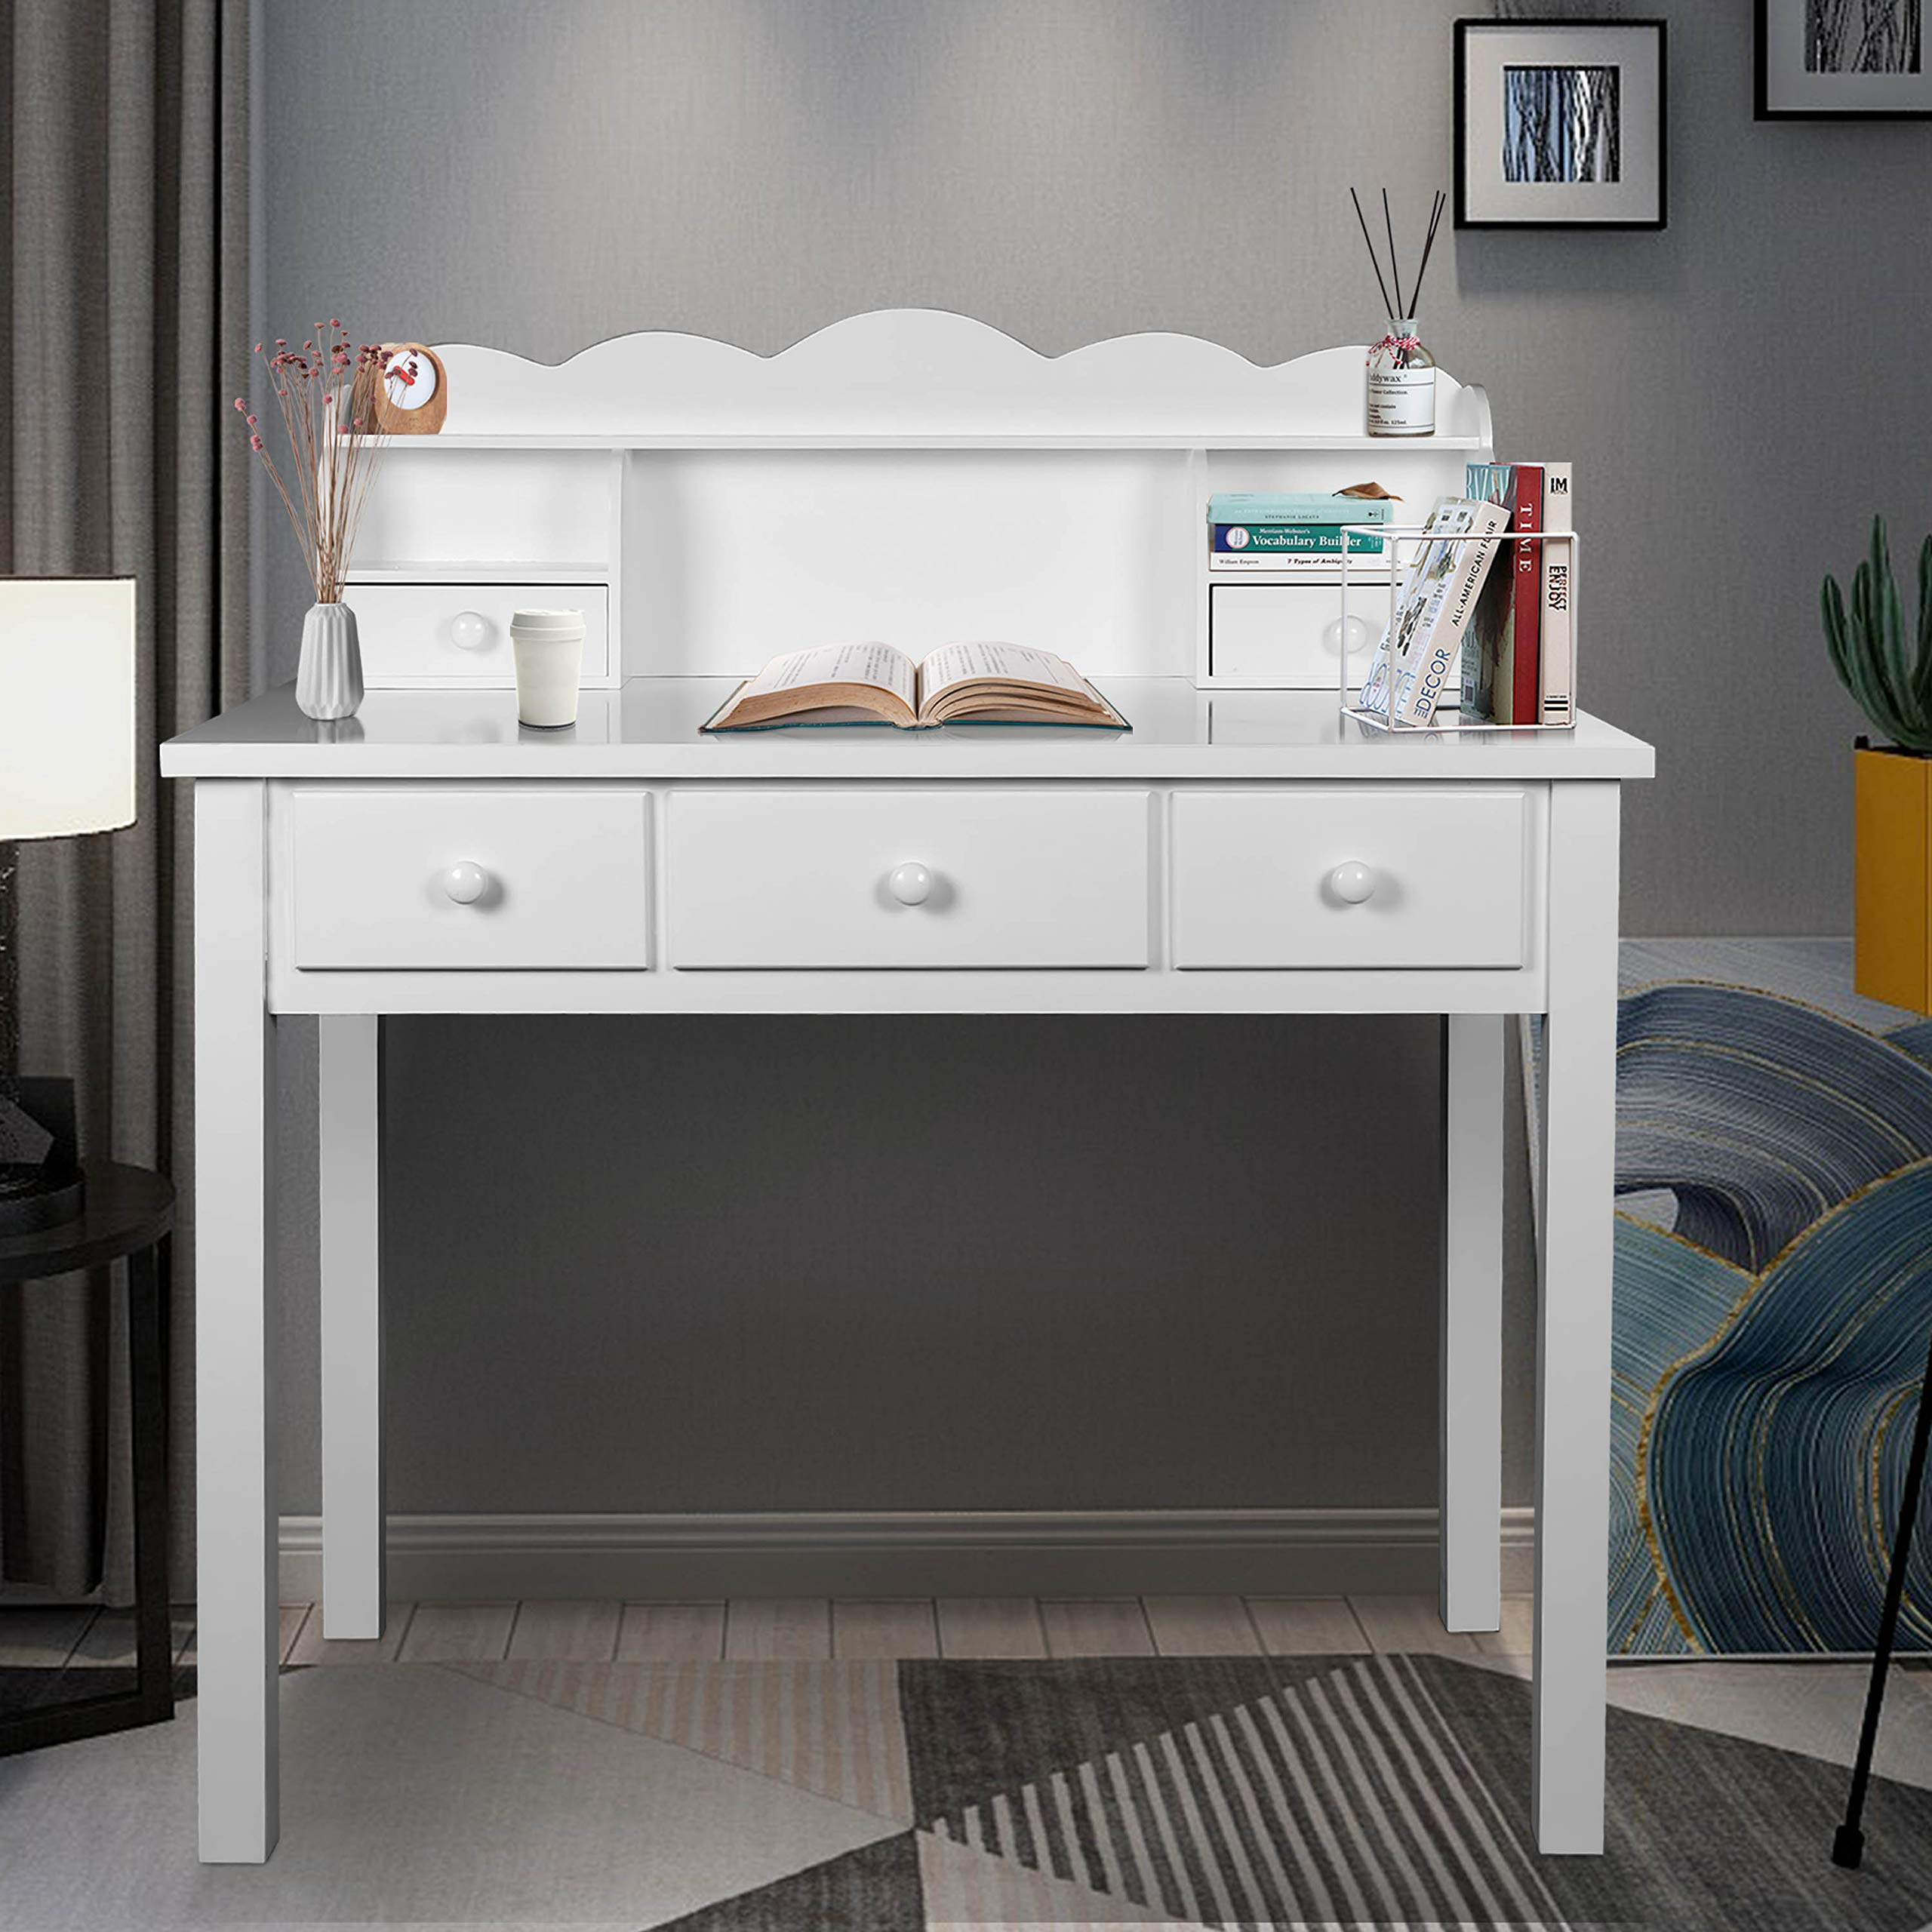 Home Office Furniture Writing Desk,Computer Work Station with Detachable Hutch,5 Drawers(White) by FUNKOCO (Image #1)